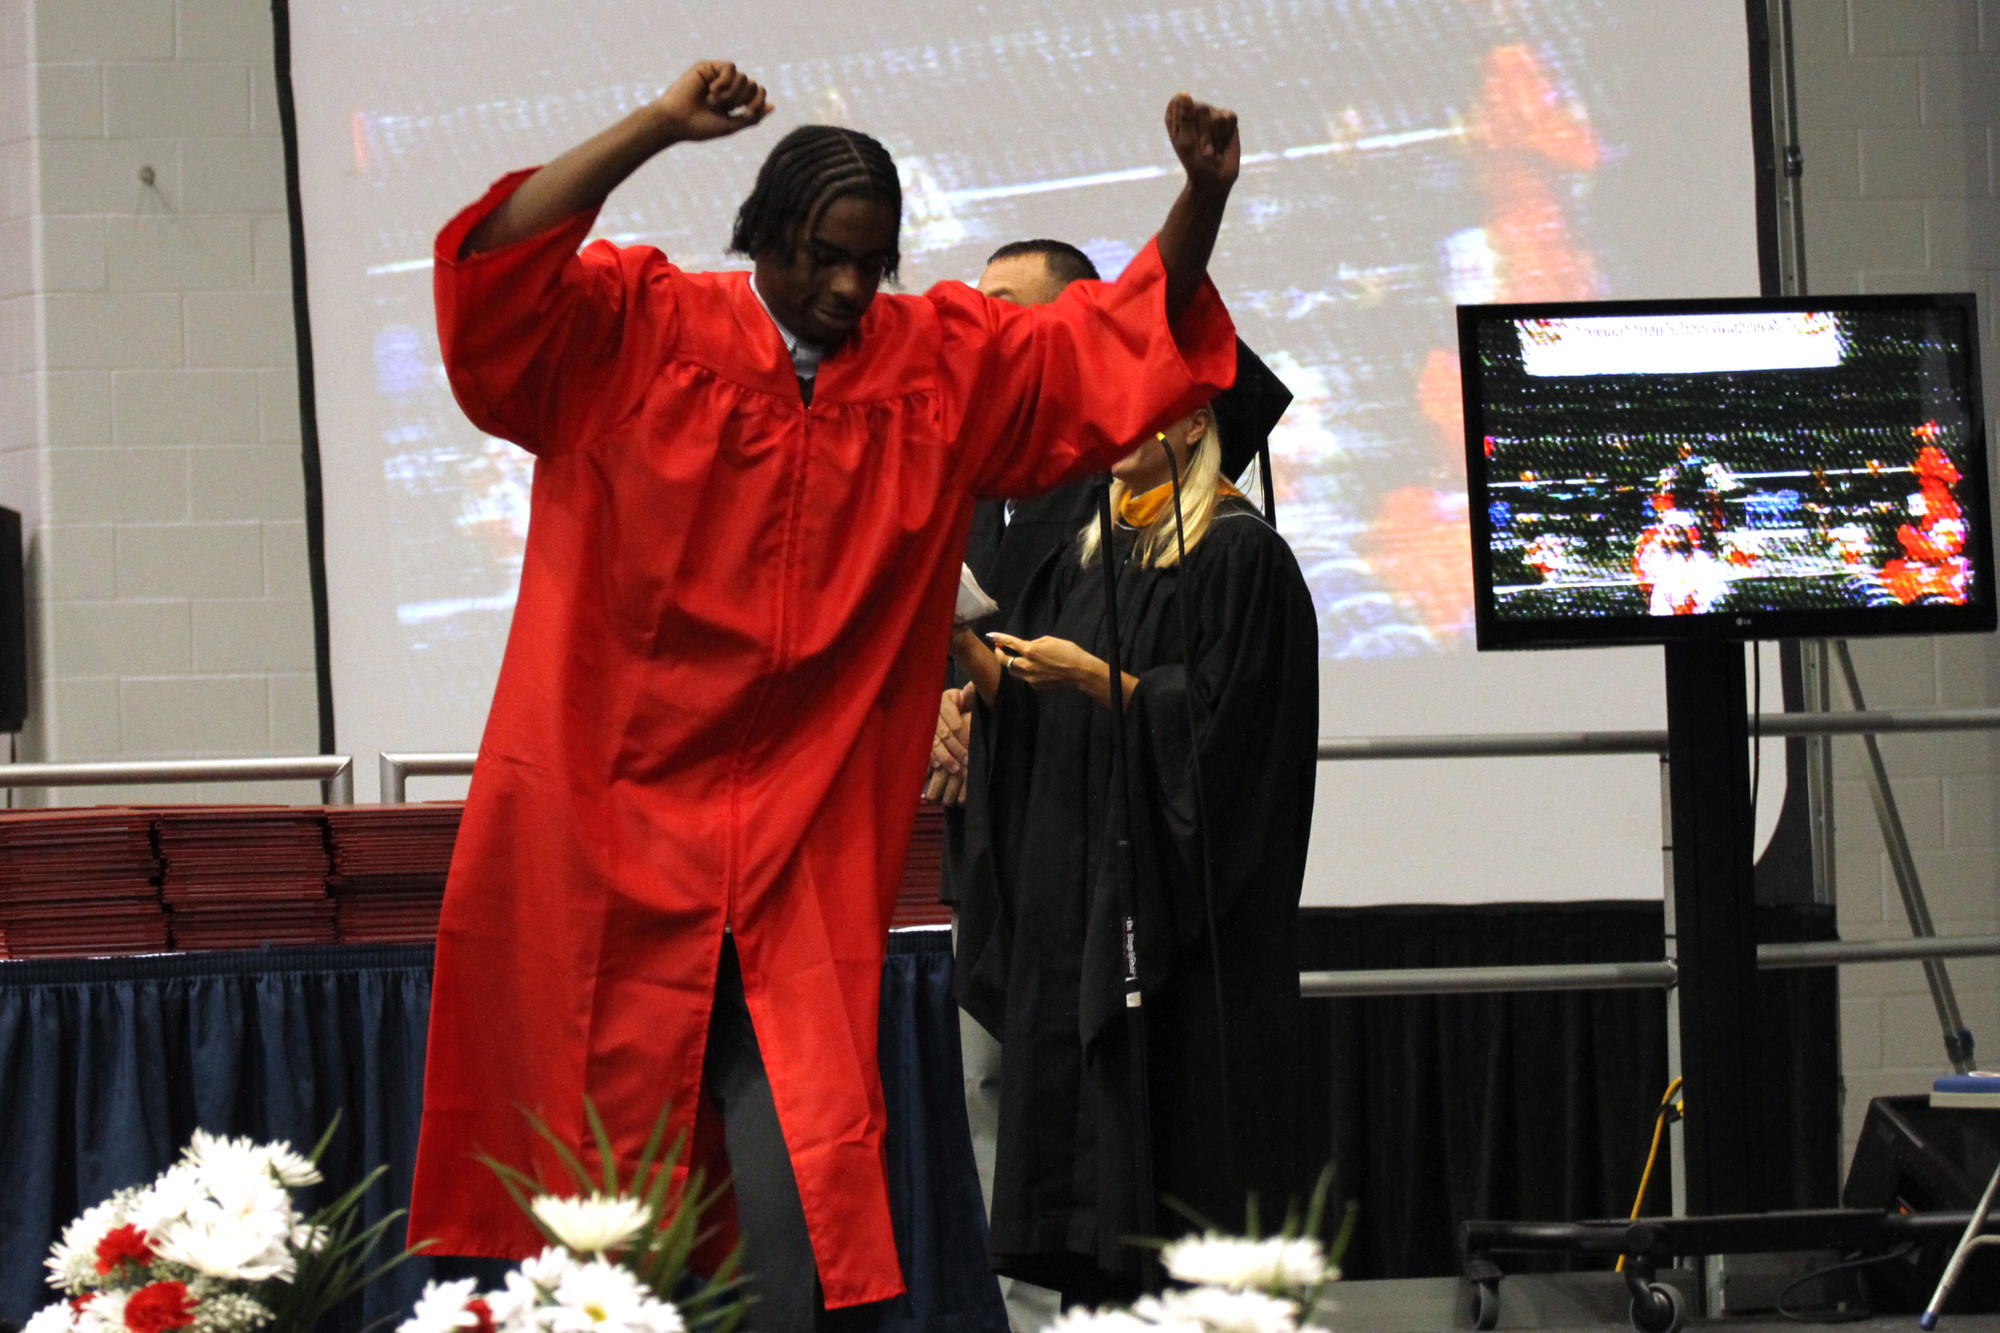 Nicholas Harrison throws his hands up in celebration as he graduates